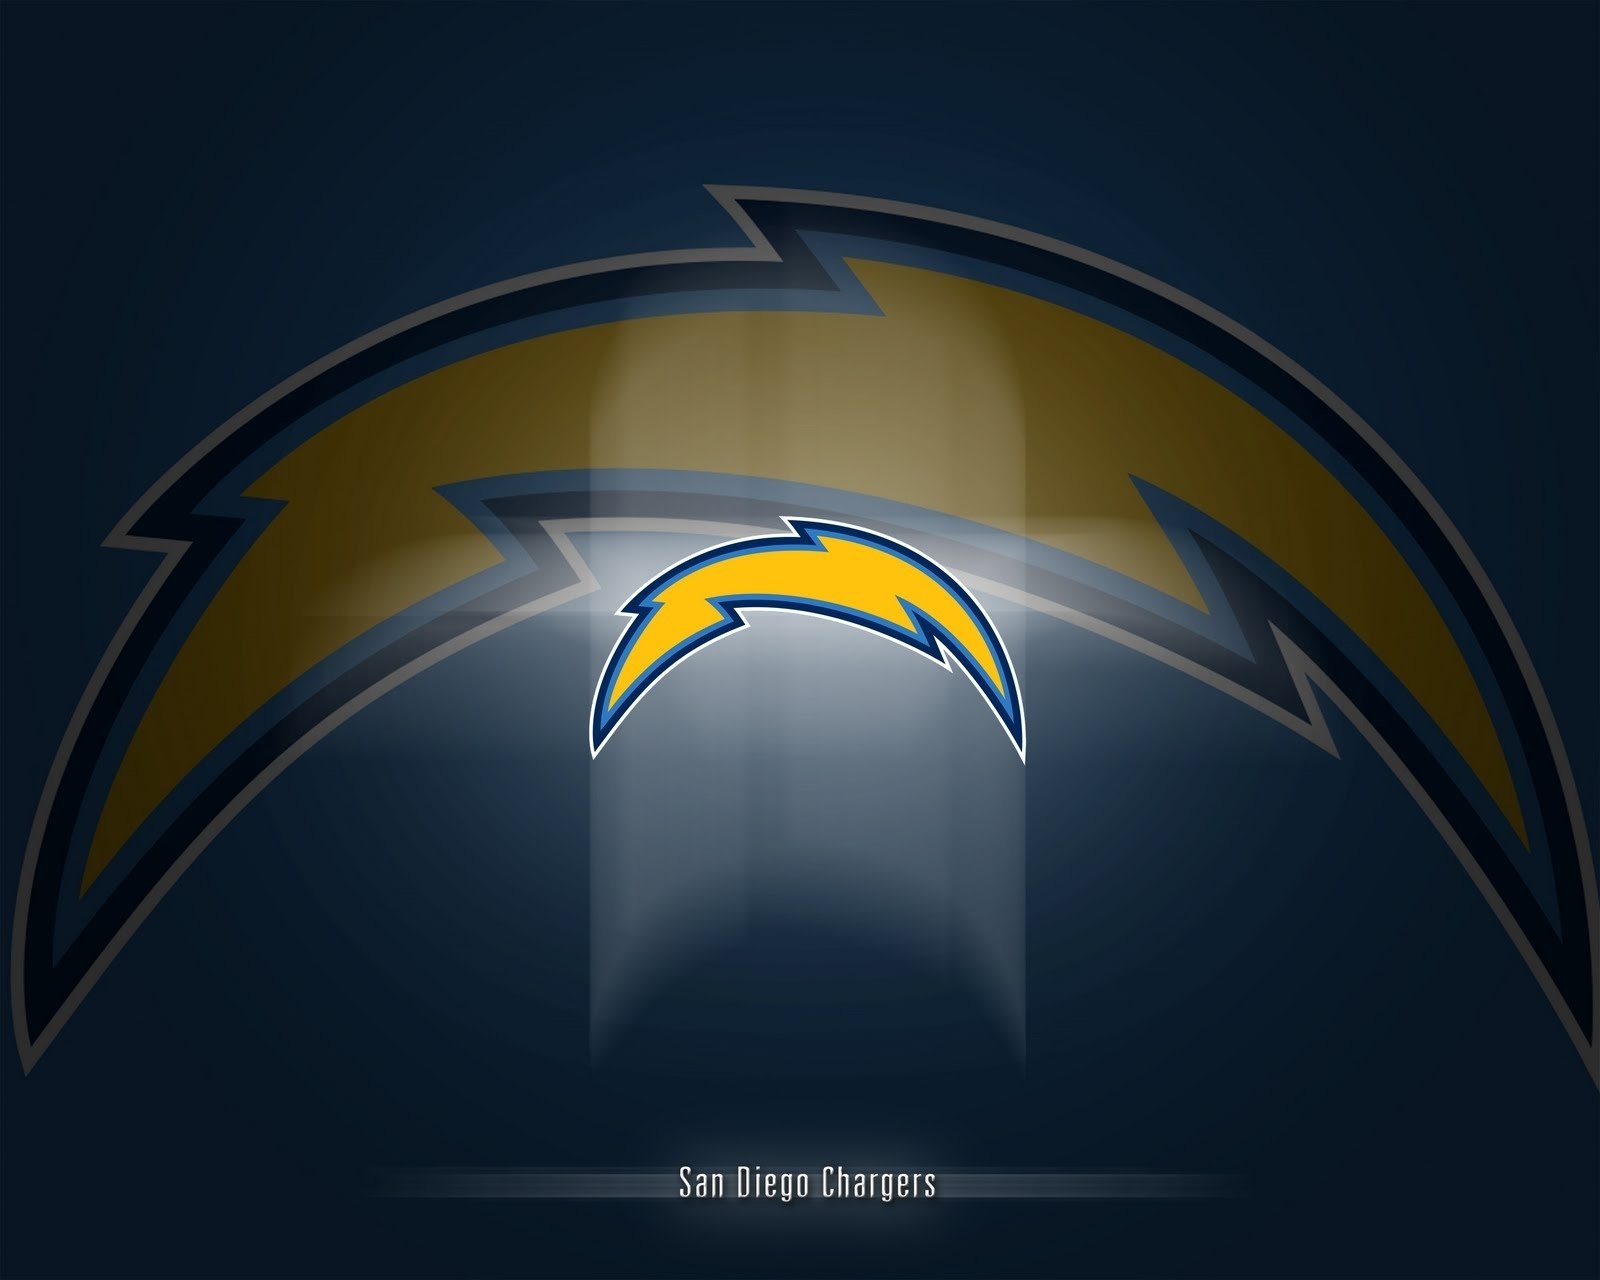 san-diego-chargers-wallpaper-hd - wallpaper.wiki